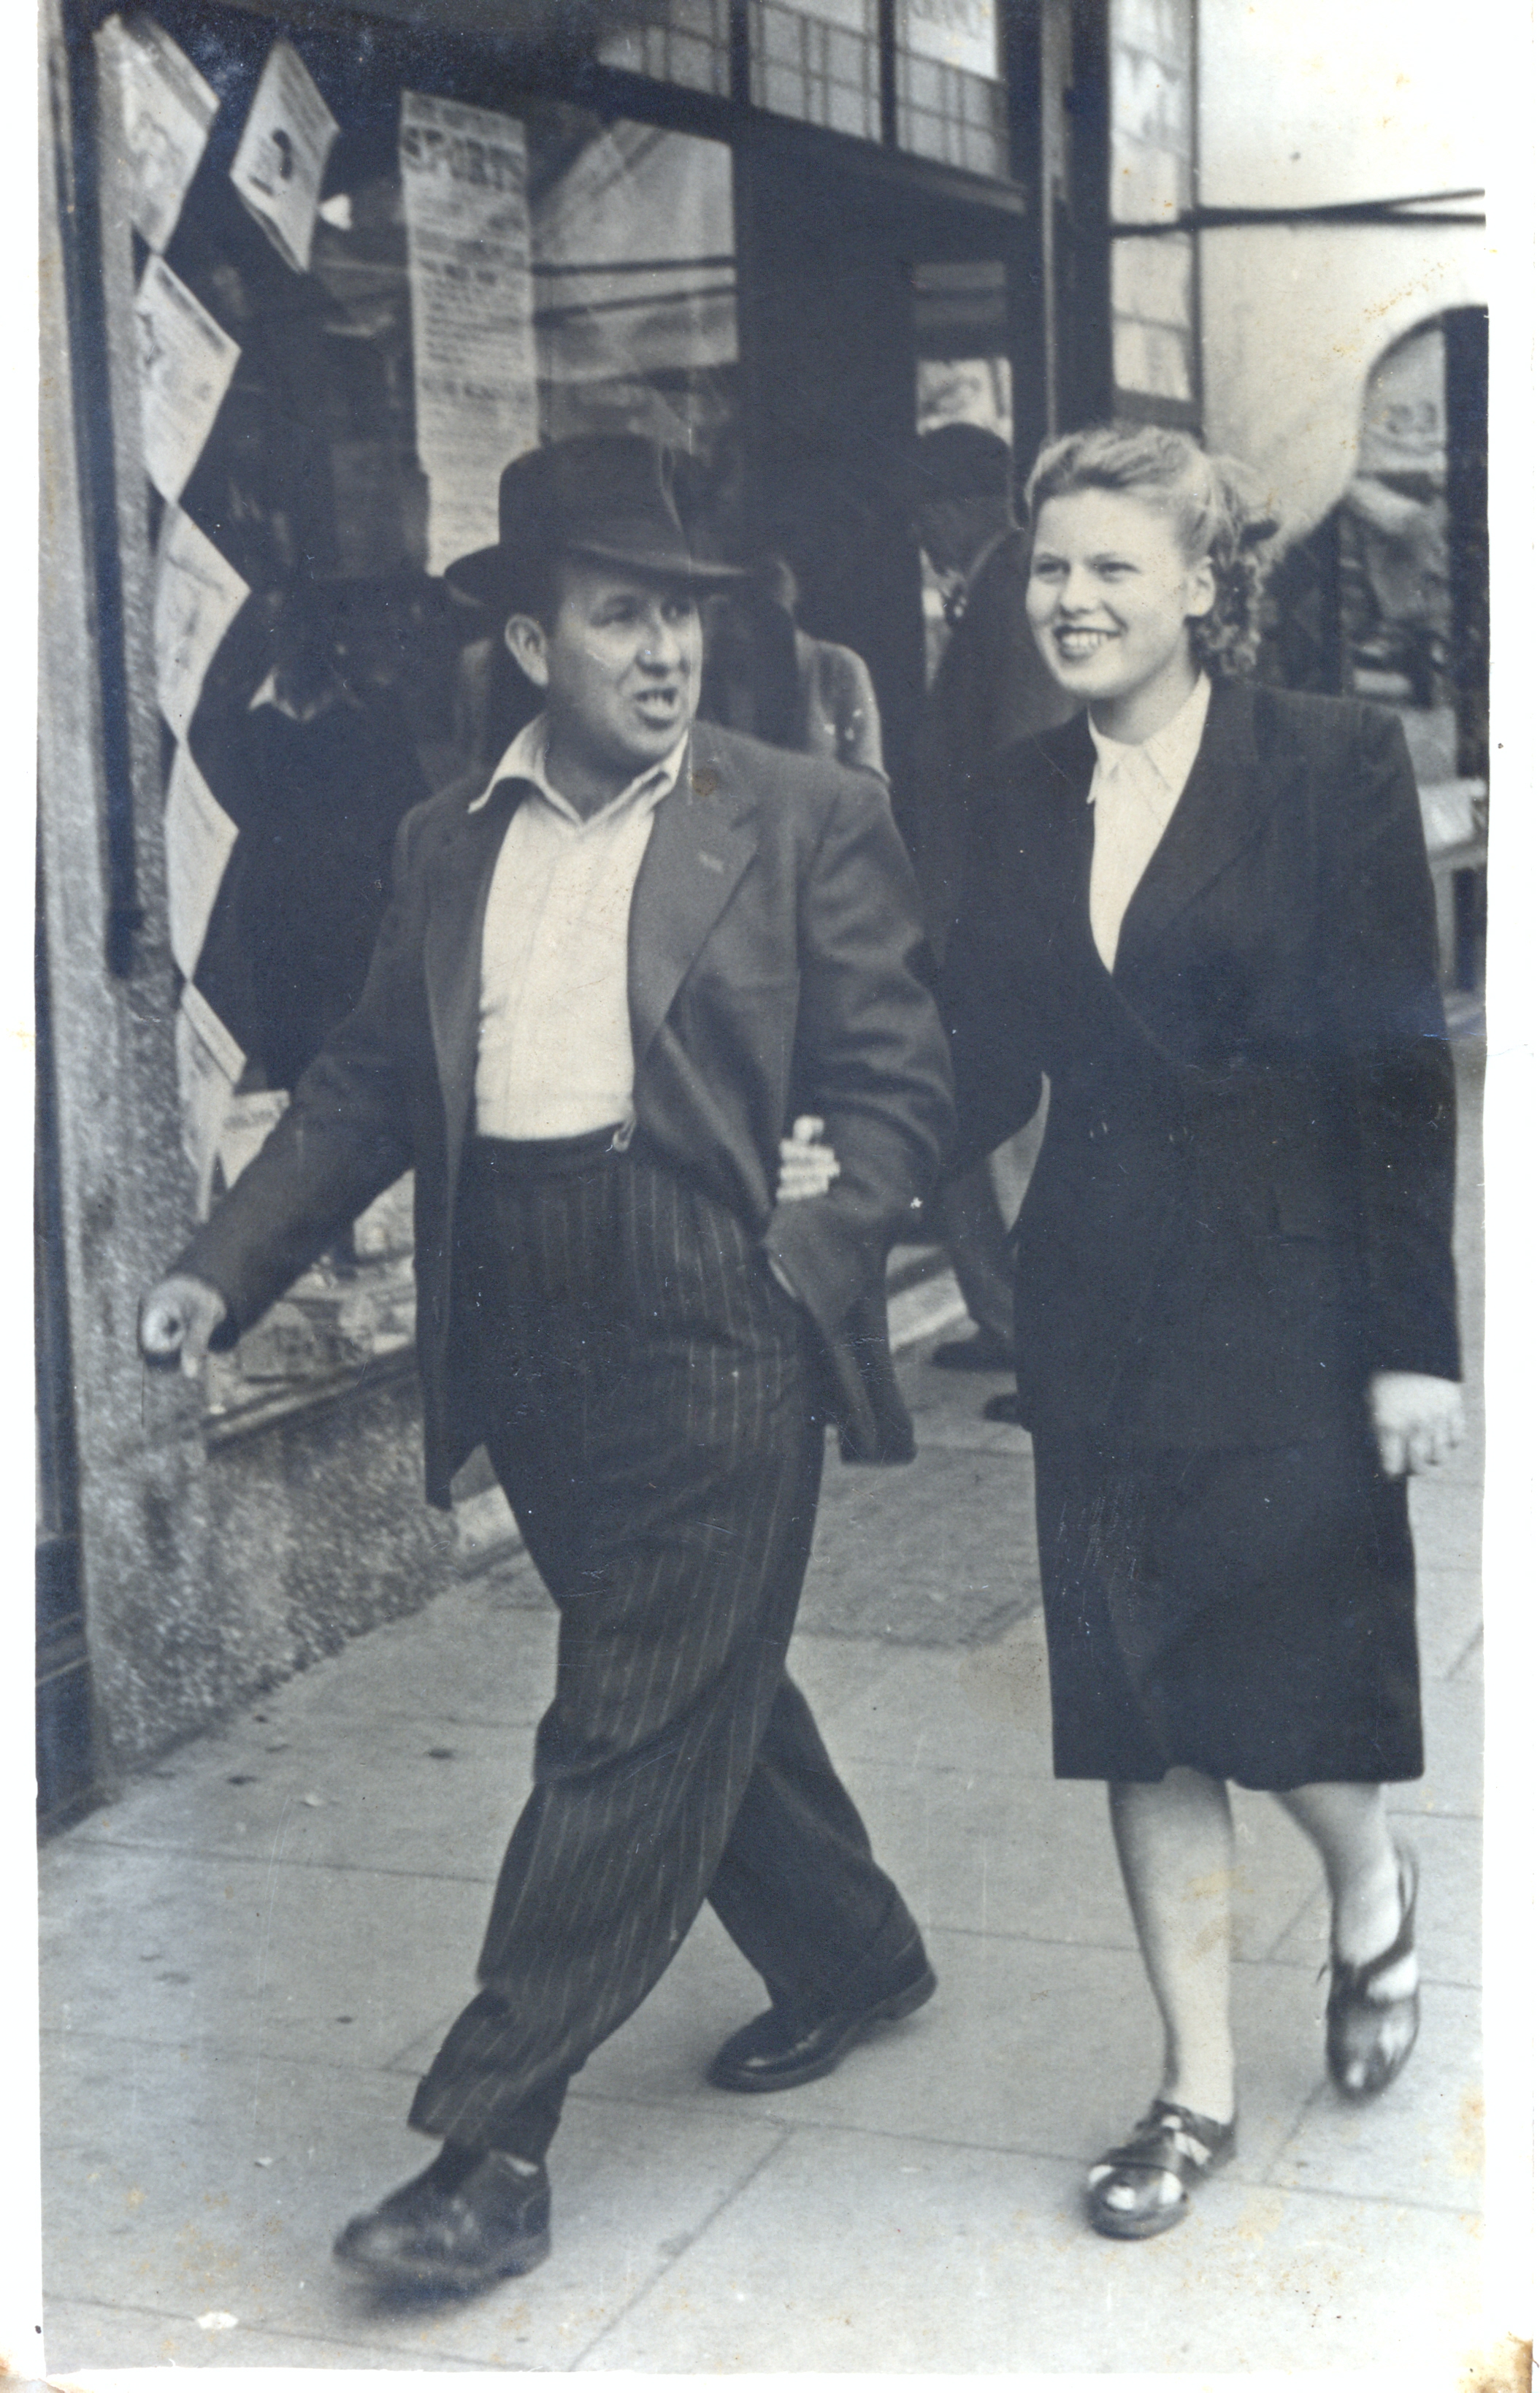 Frank Cartlidge and the Women He Loved